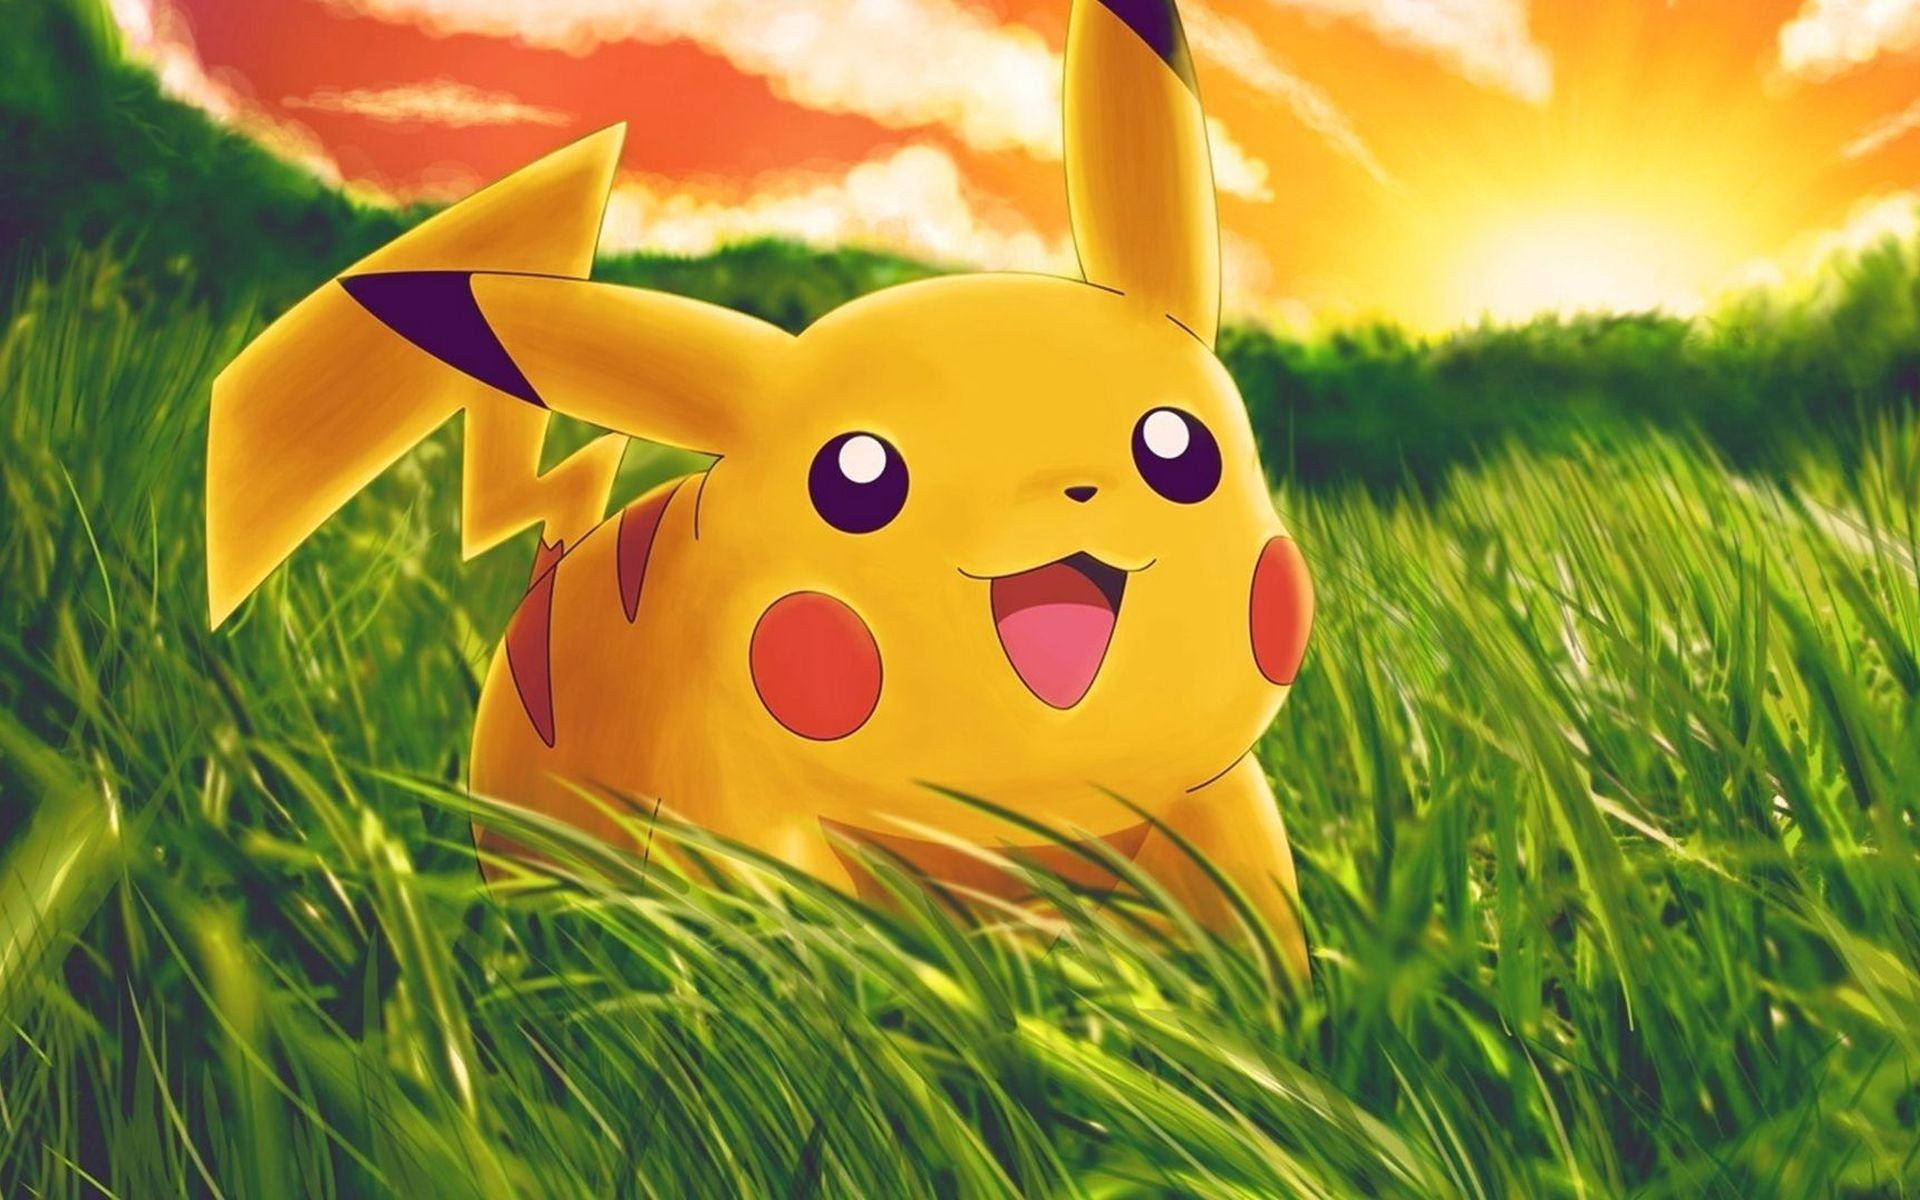 pokemon hd wallpaper ·① download free awesome high resolution